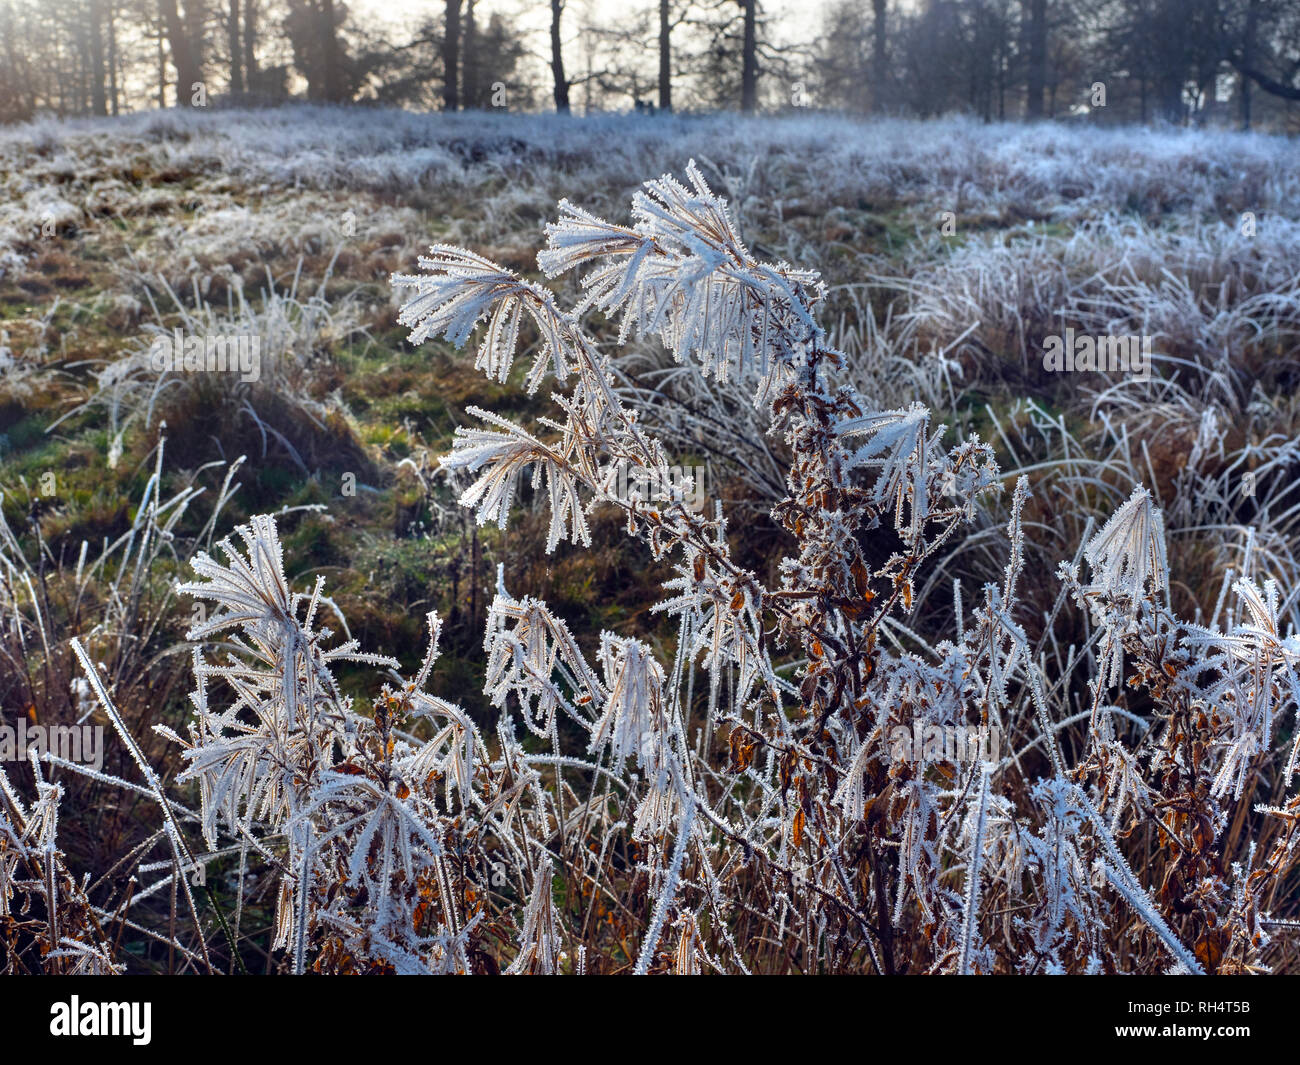 frosted dead stems of Rosebay Willowherb Epilobium angustifoliu - Stock Image